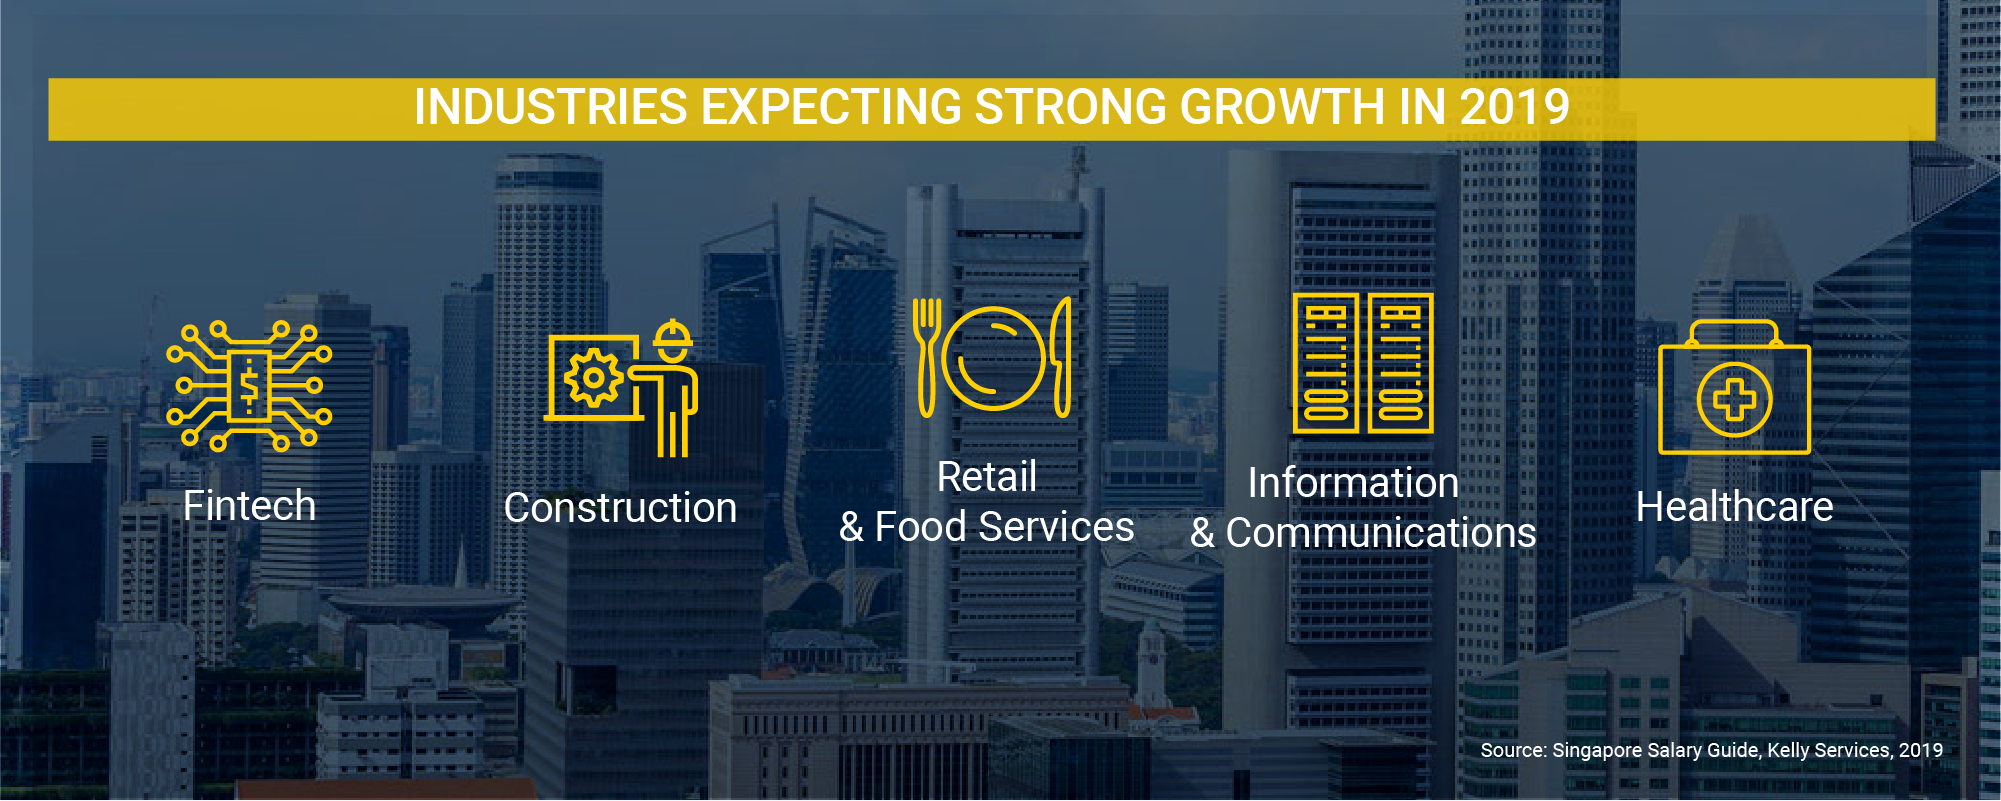 Kelly Services SG salary guide 2019 - industries expecting strong growth